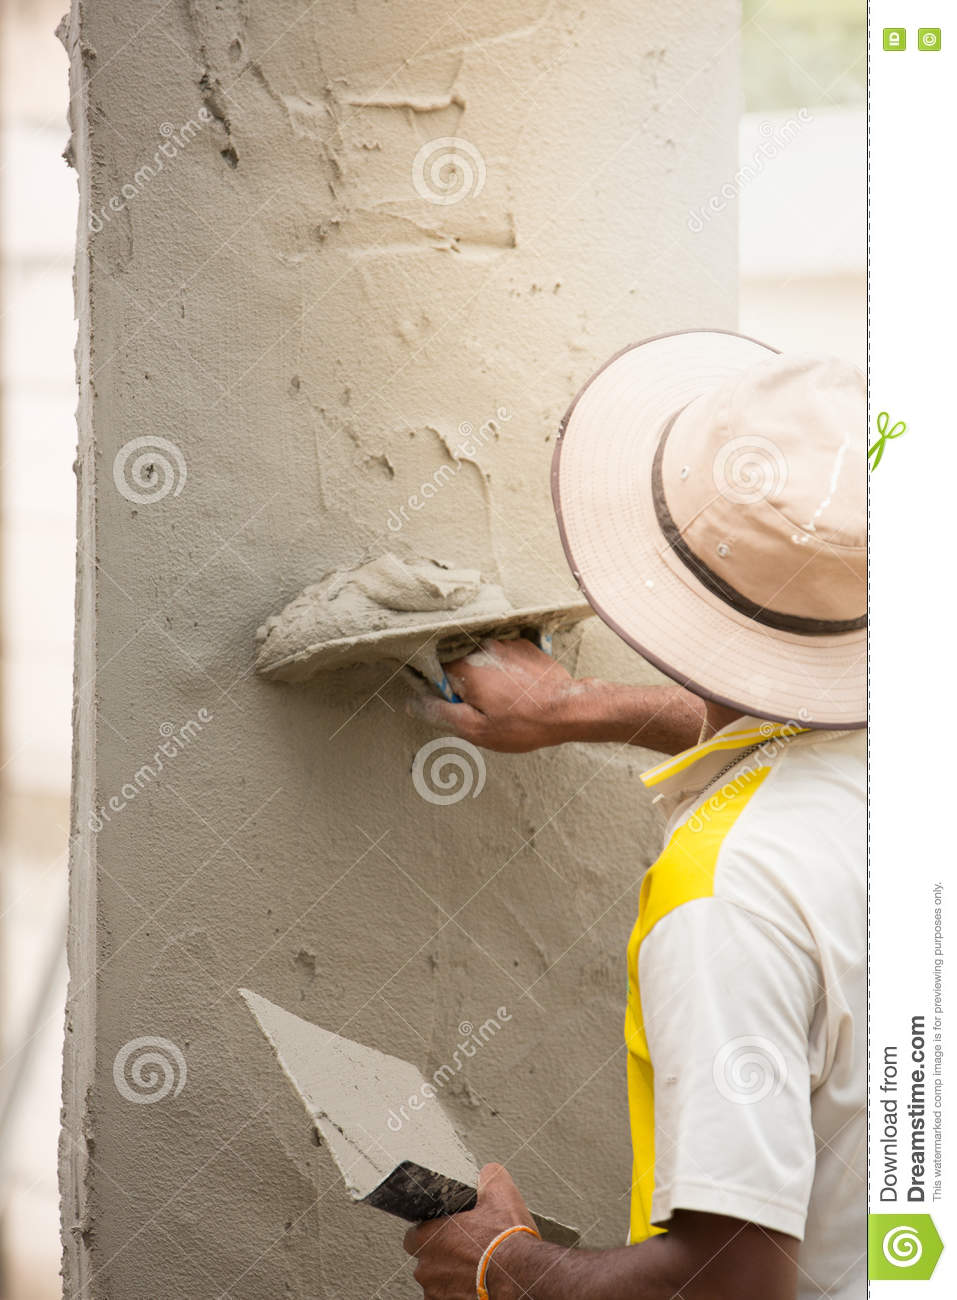 Mason Using Trowel For Plastering The Concrete To Build Wall, Co